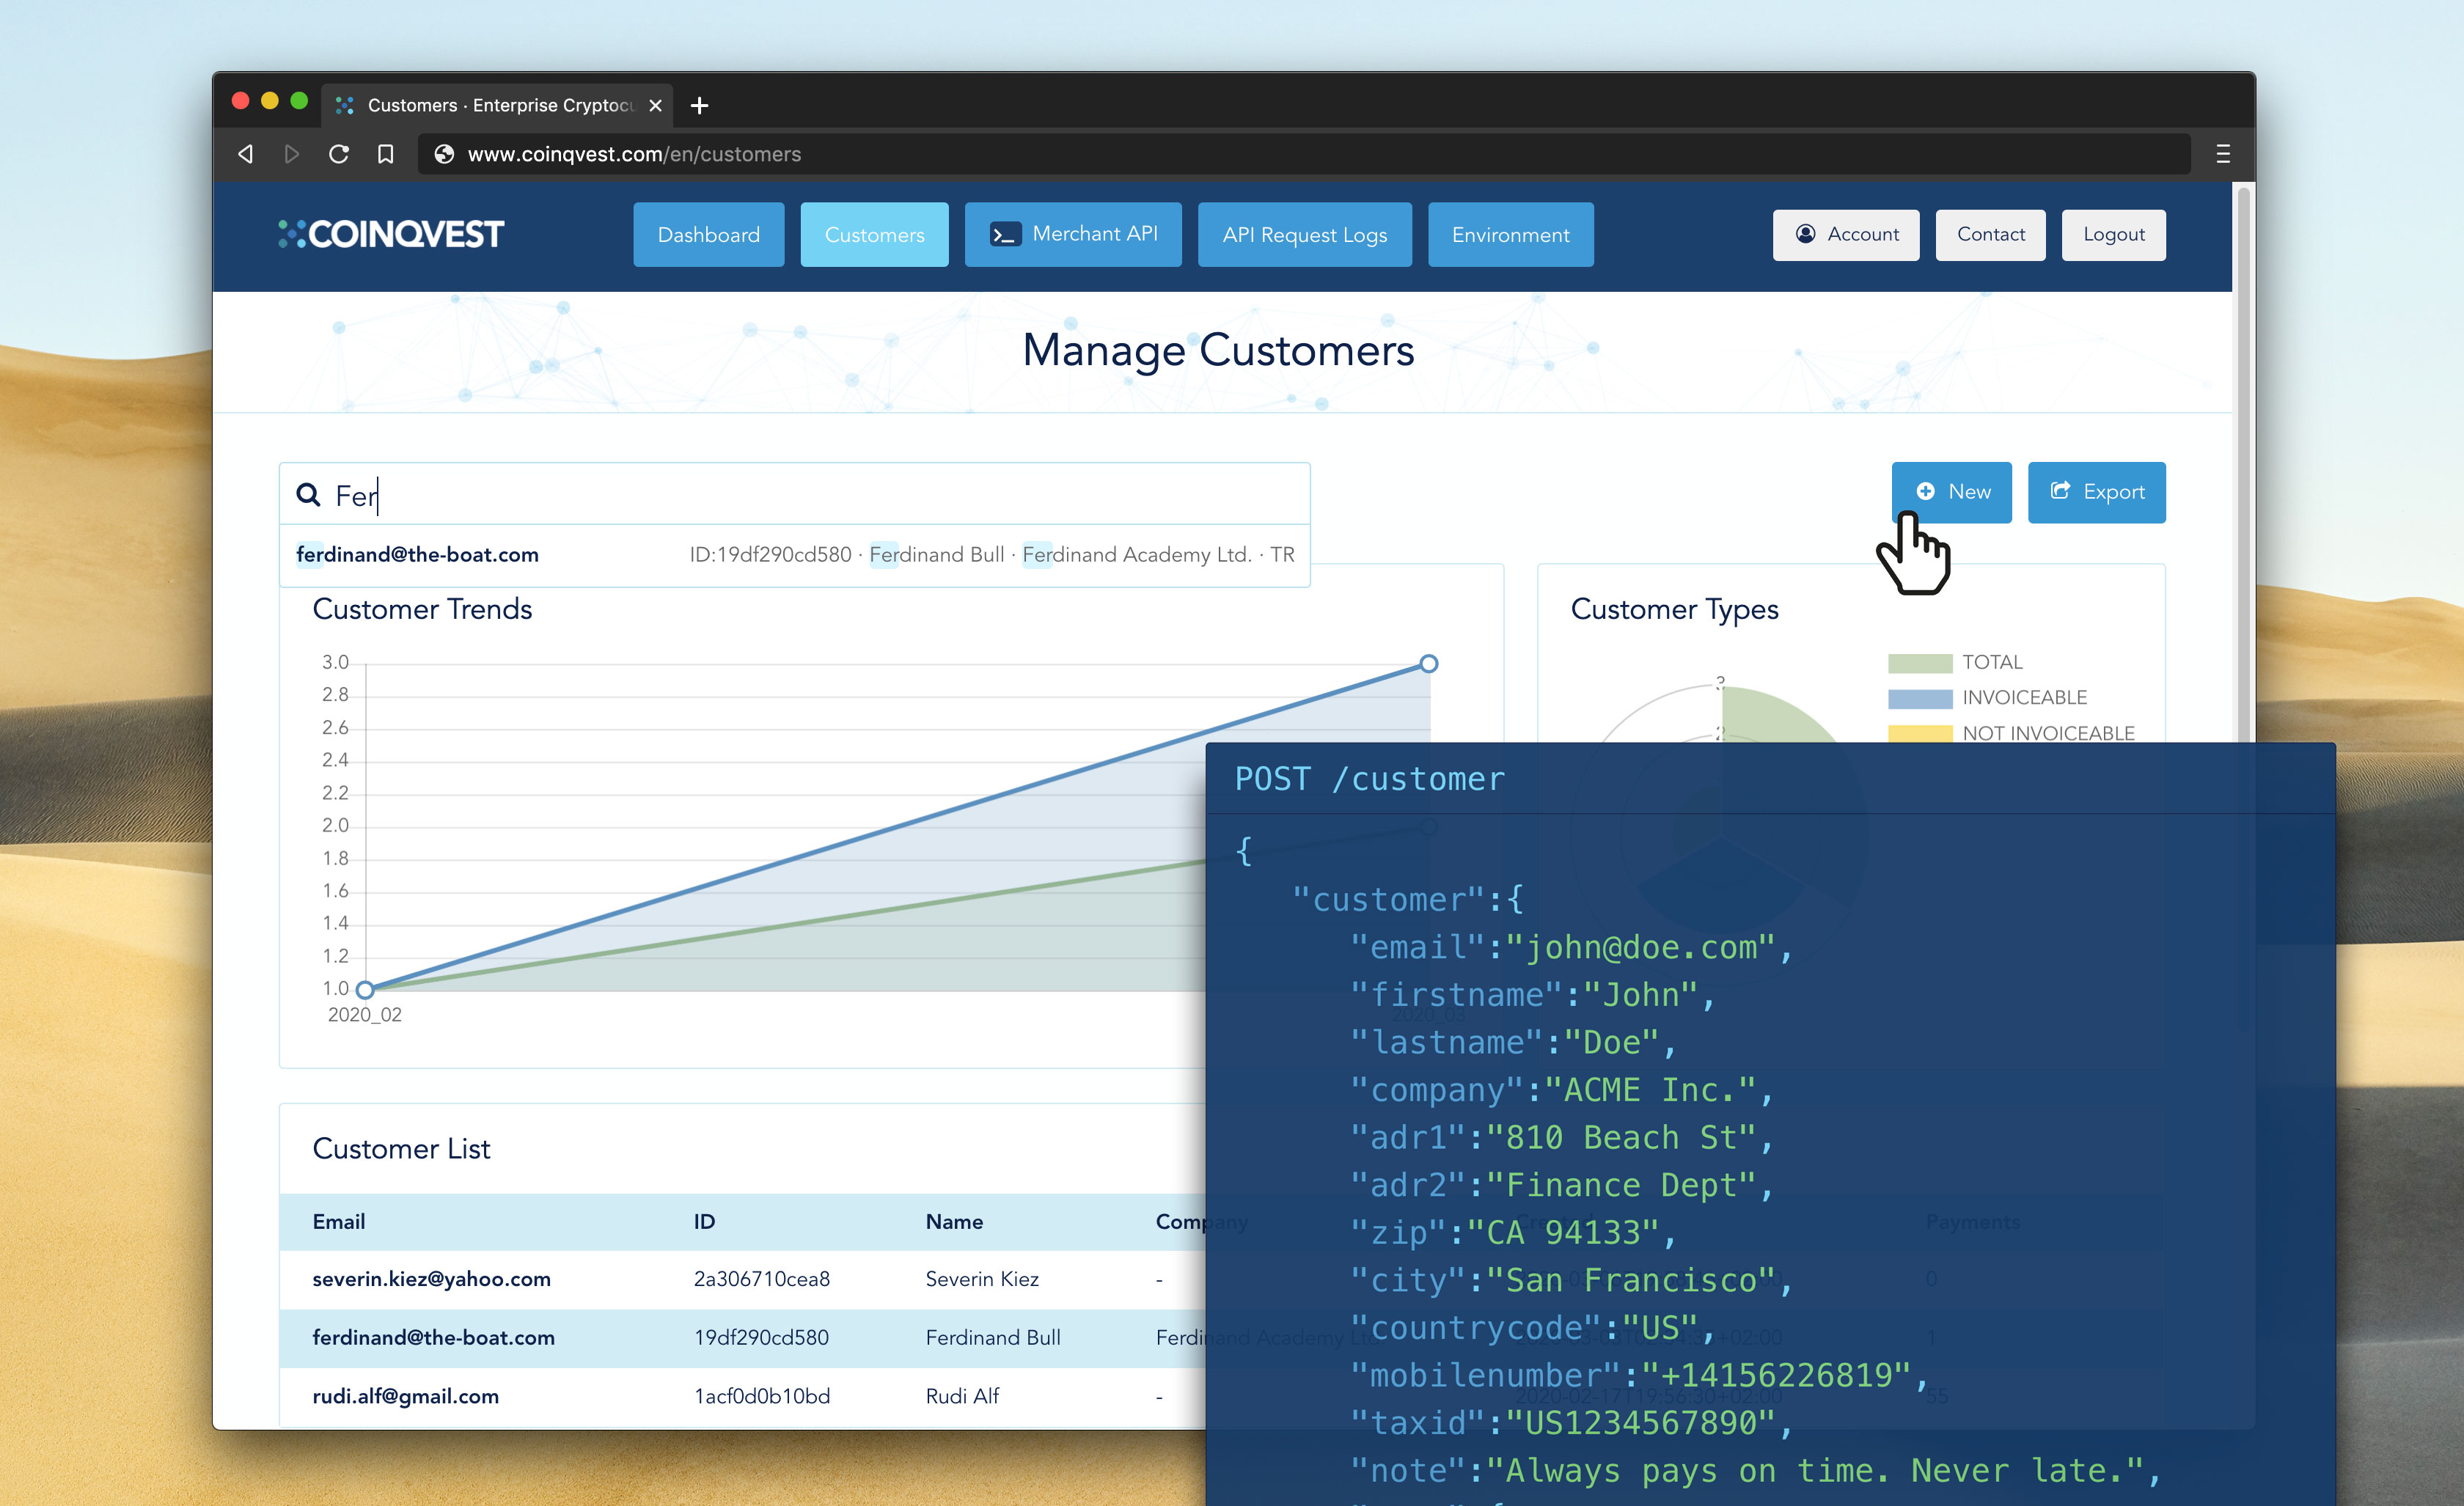 Customer Management, Transaction Records and Invoicing via UI or API